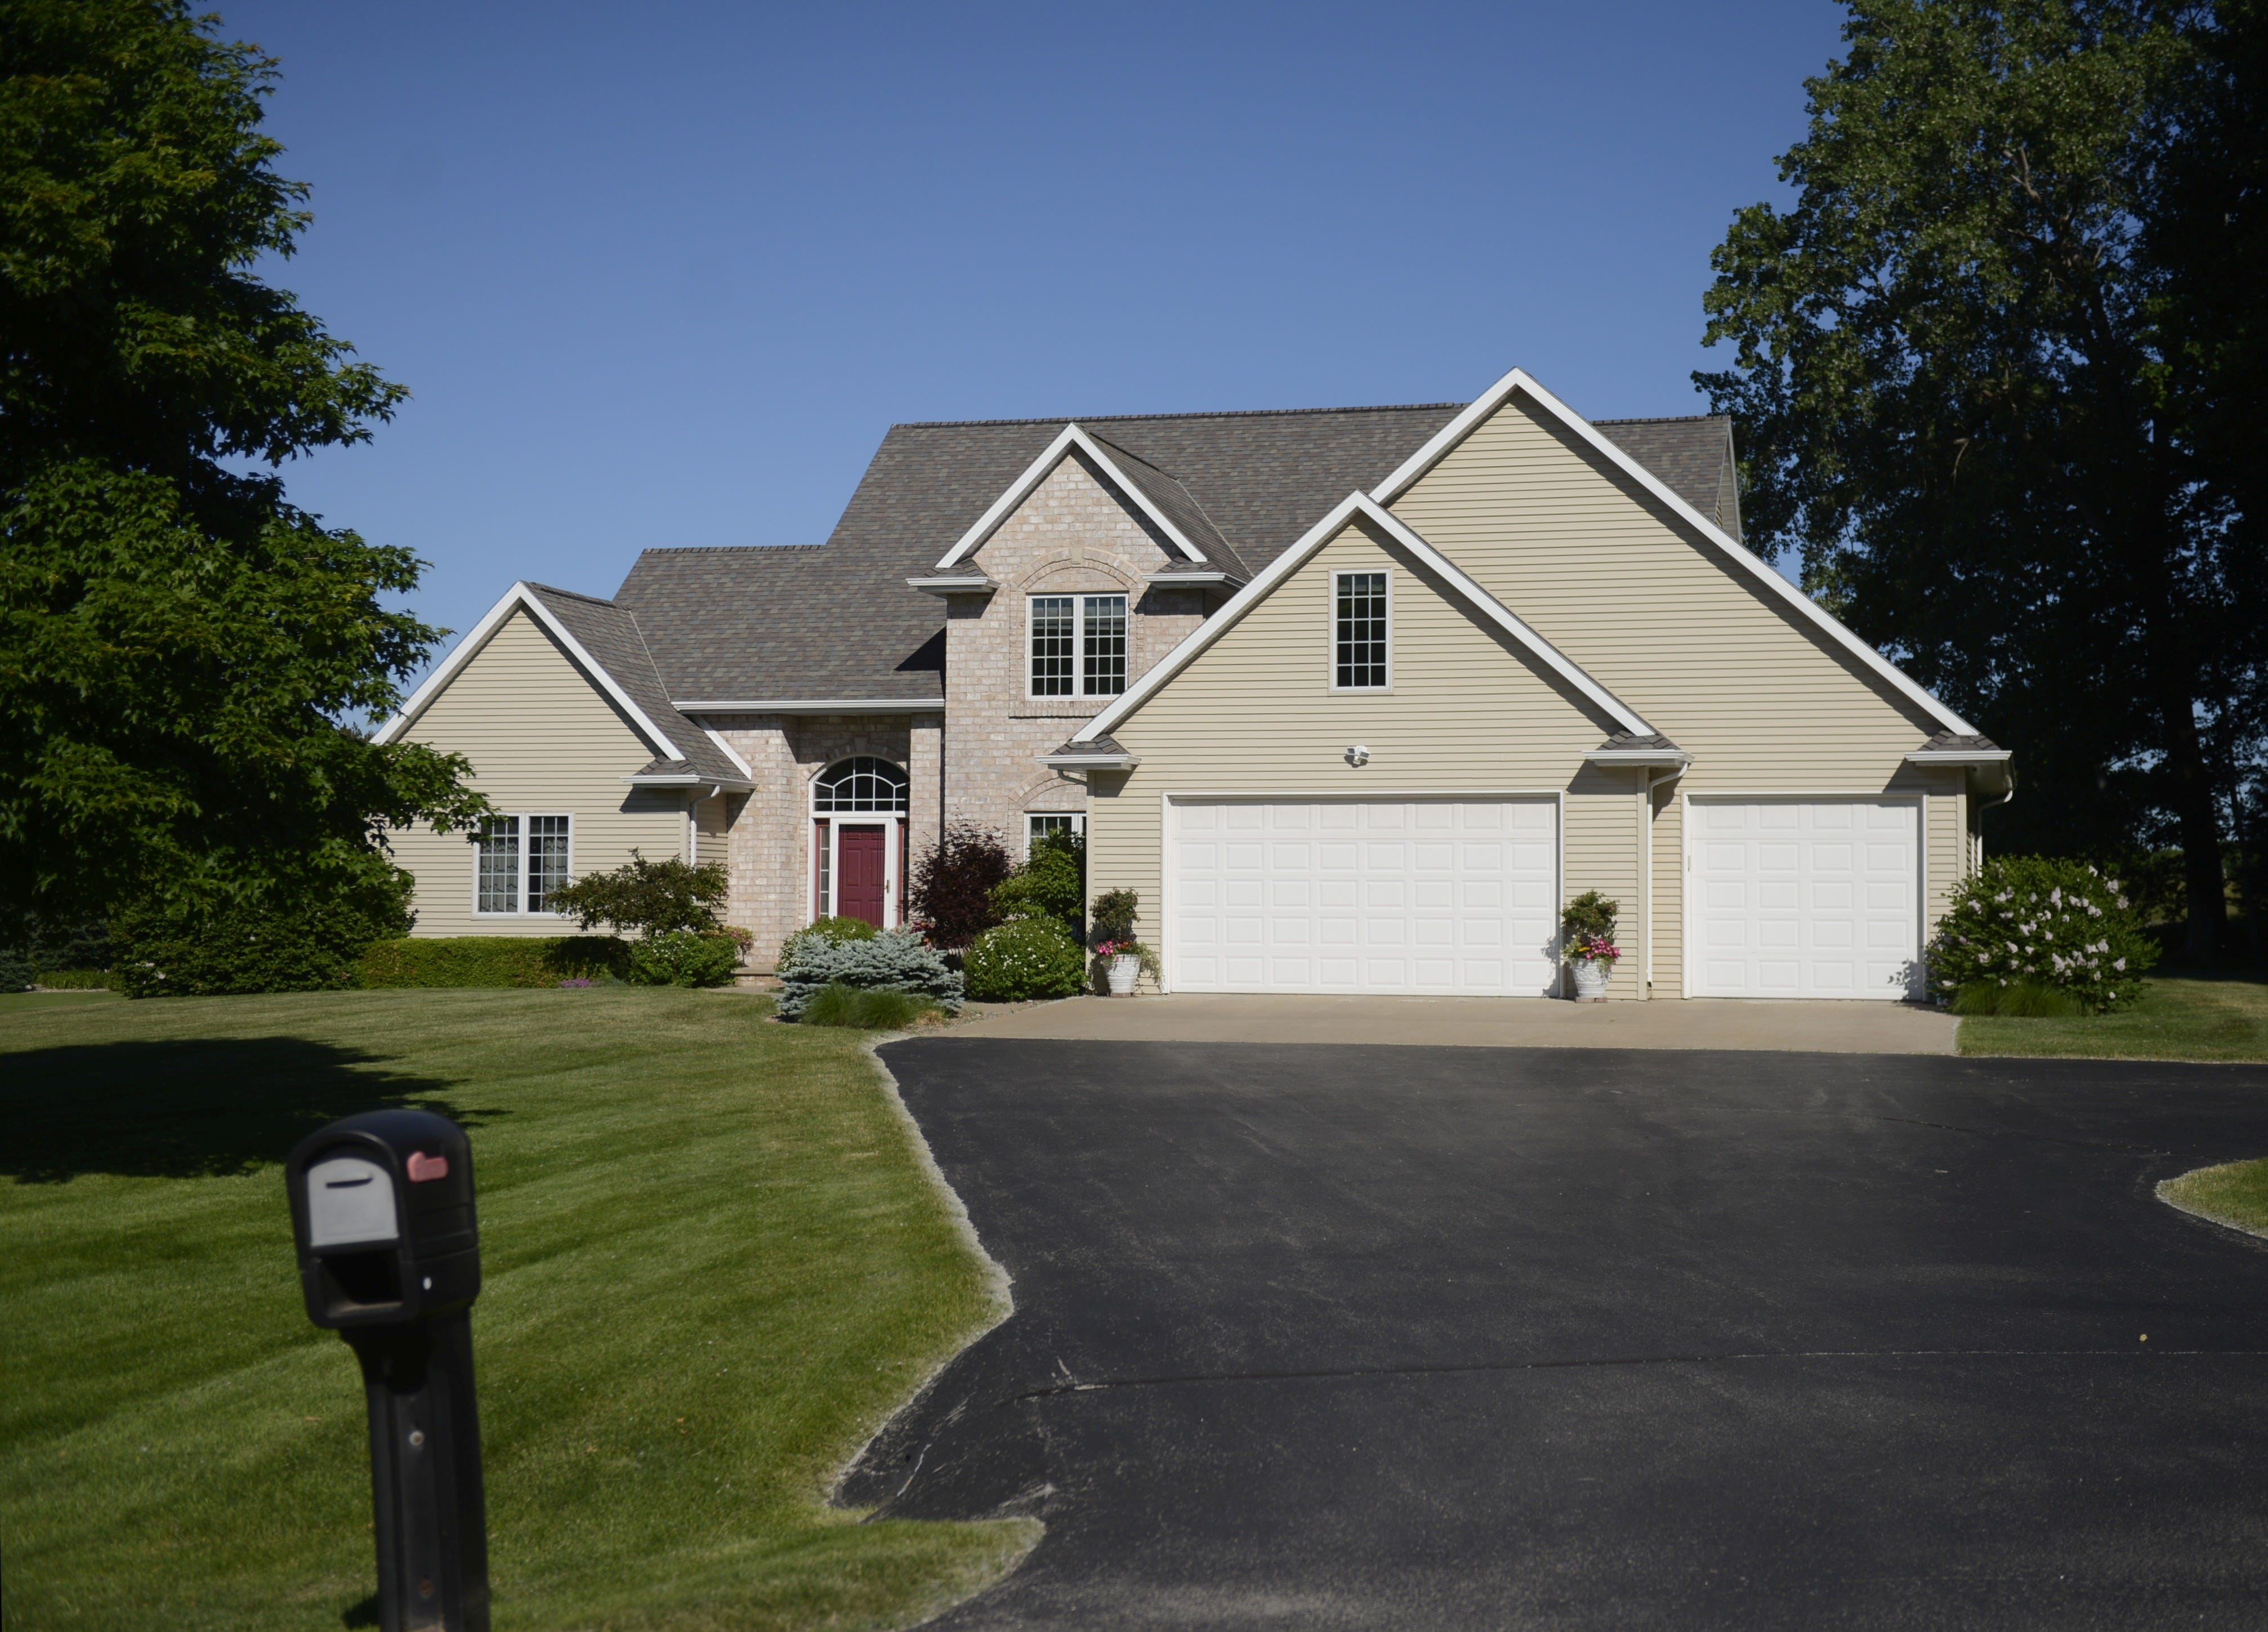 Jordy Nelsonu0027s House In Suamico Is For Sale. It Can Be Yours For $379,000.